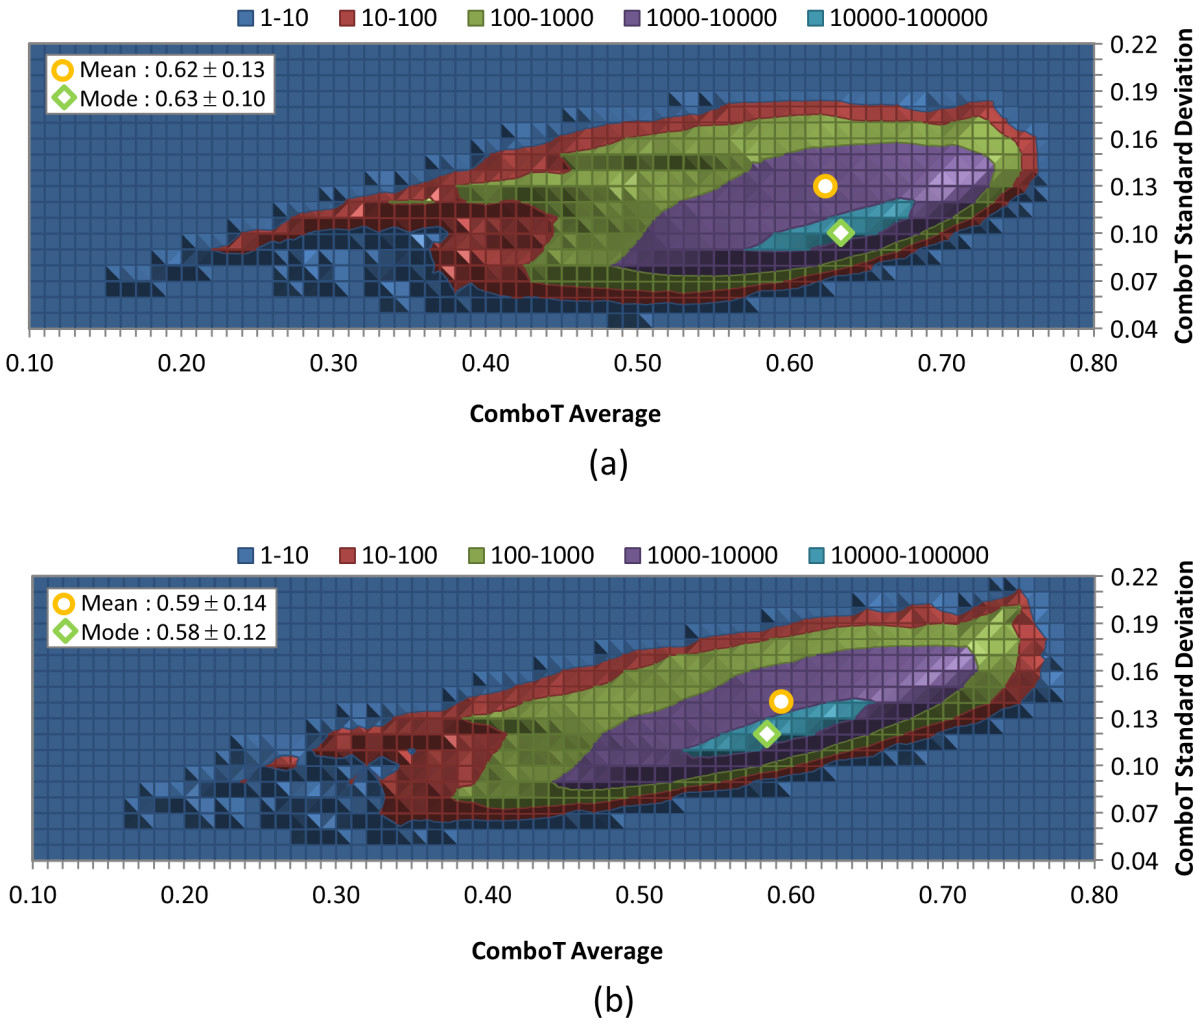 http://static-content.springer.com/image/art%3A10.1186%2F1758-2946-3-26/MediaObjects/13321_2011_Article_211_Fig7_HTML.jpg